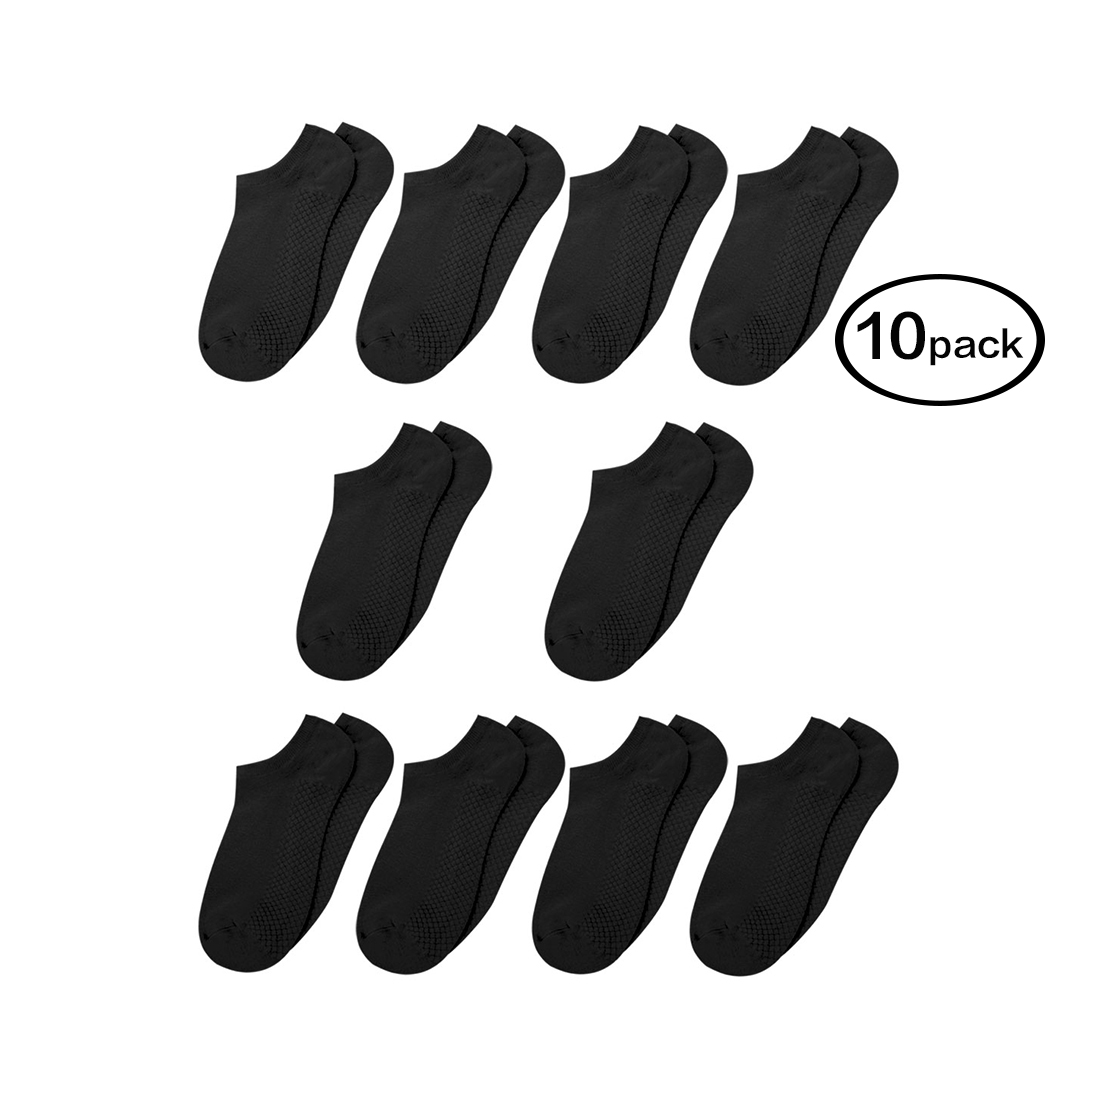 Women Low Cut Textured Sole Ankle Socks 10 Pairs Black